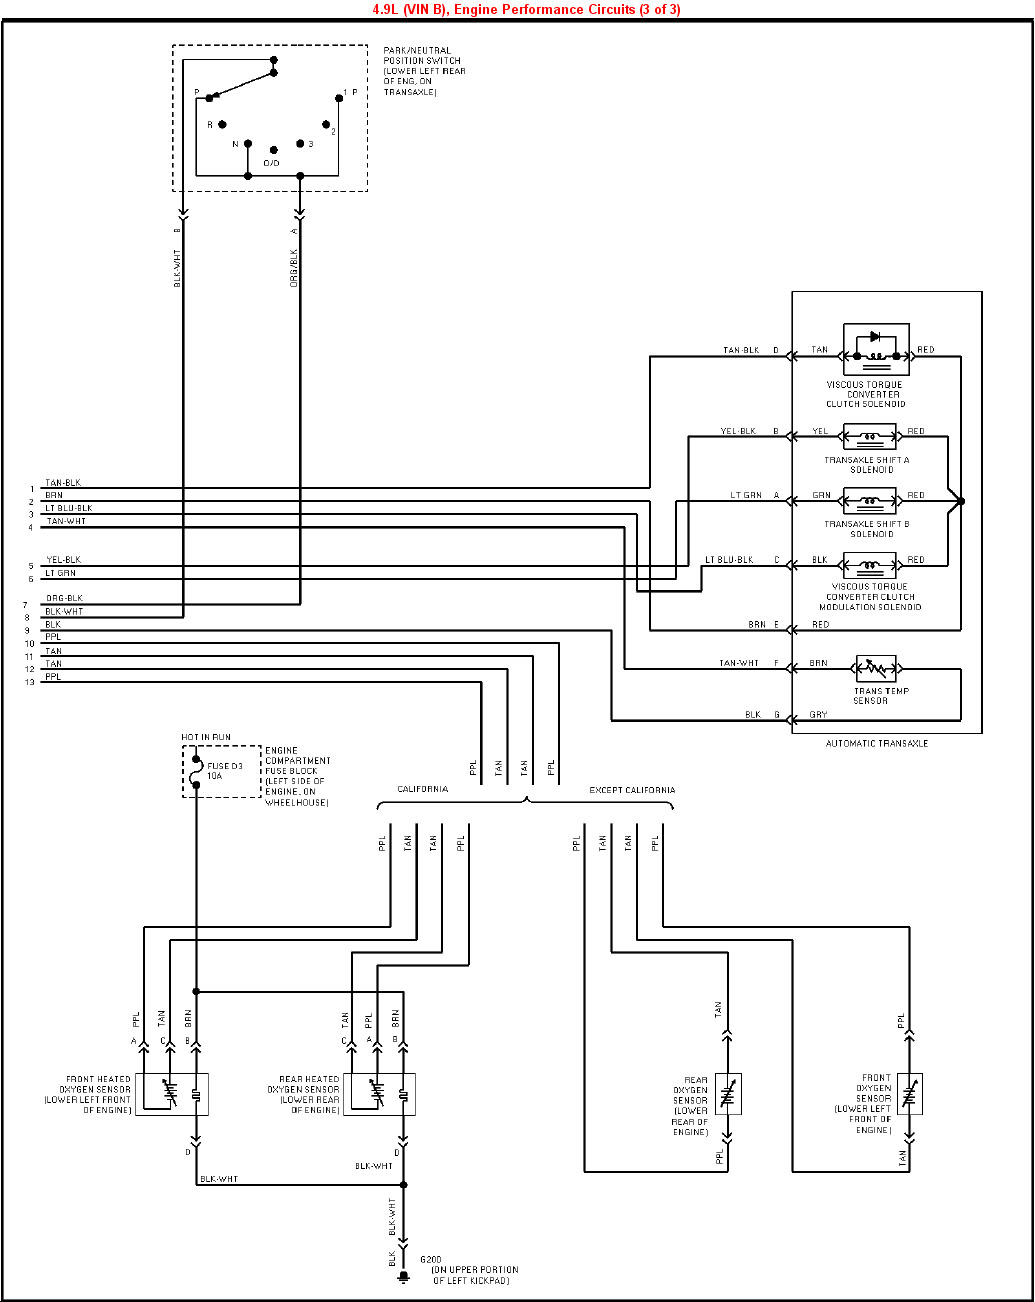 Fuse Box On 1997 Cadillac Deville Wiring Library 1988 1990 Brougham Diagram Trusted Diagrams U2022 2005